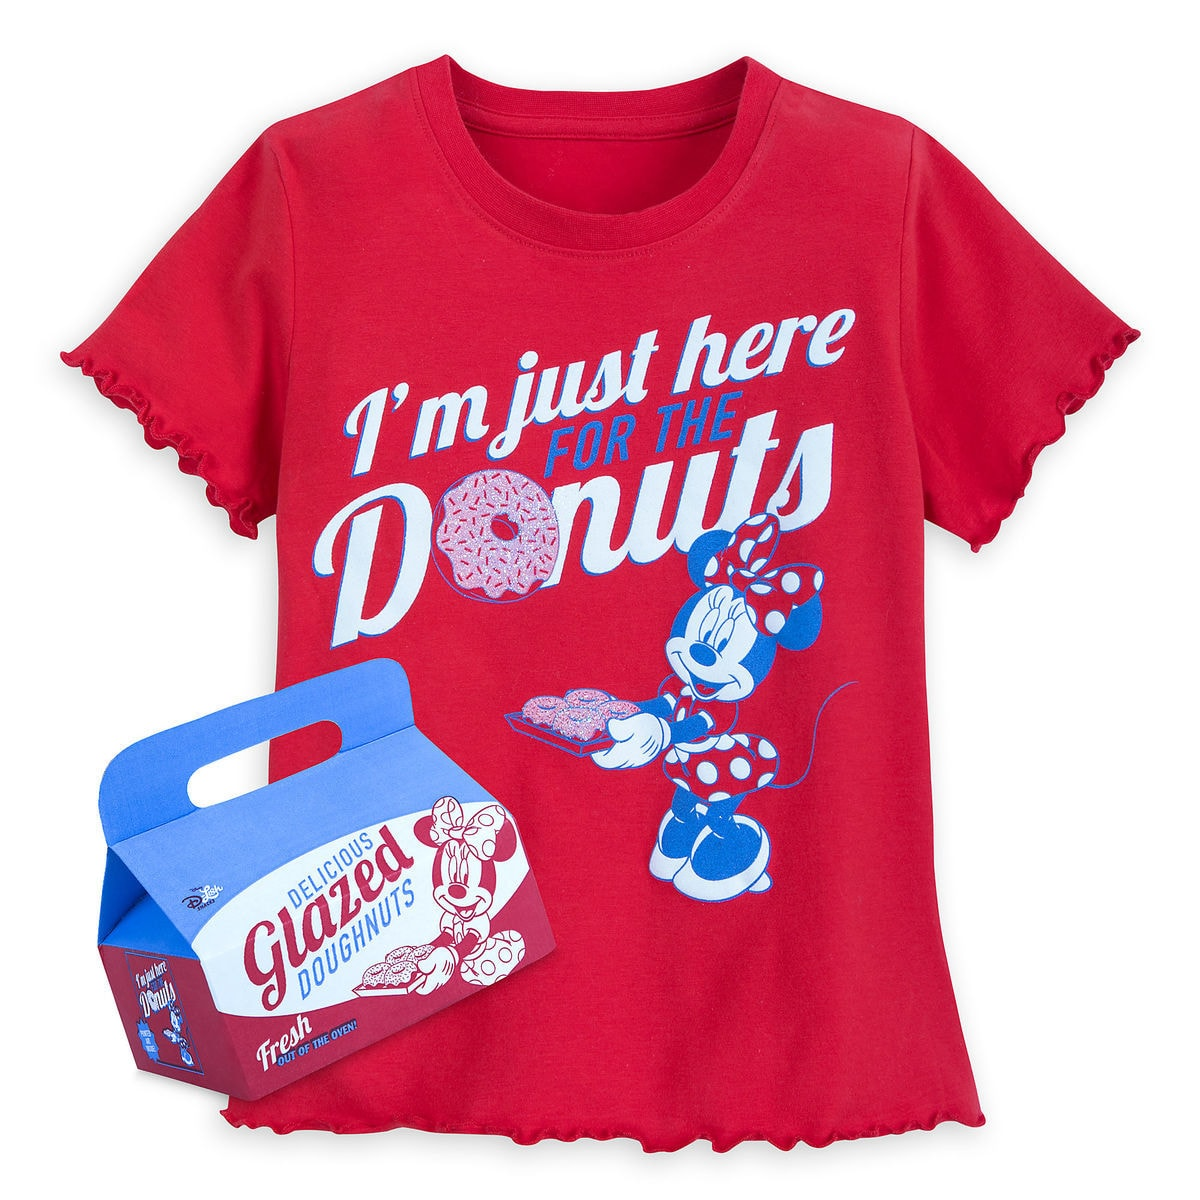 fcdb99ed Disney Shirt for Girls - Minnie Mouse Donuts - Red